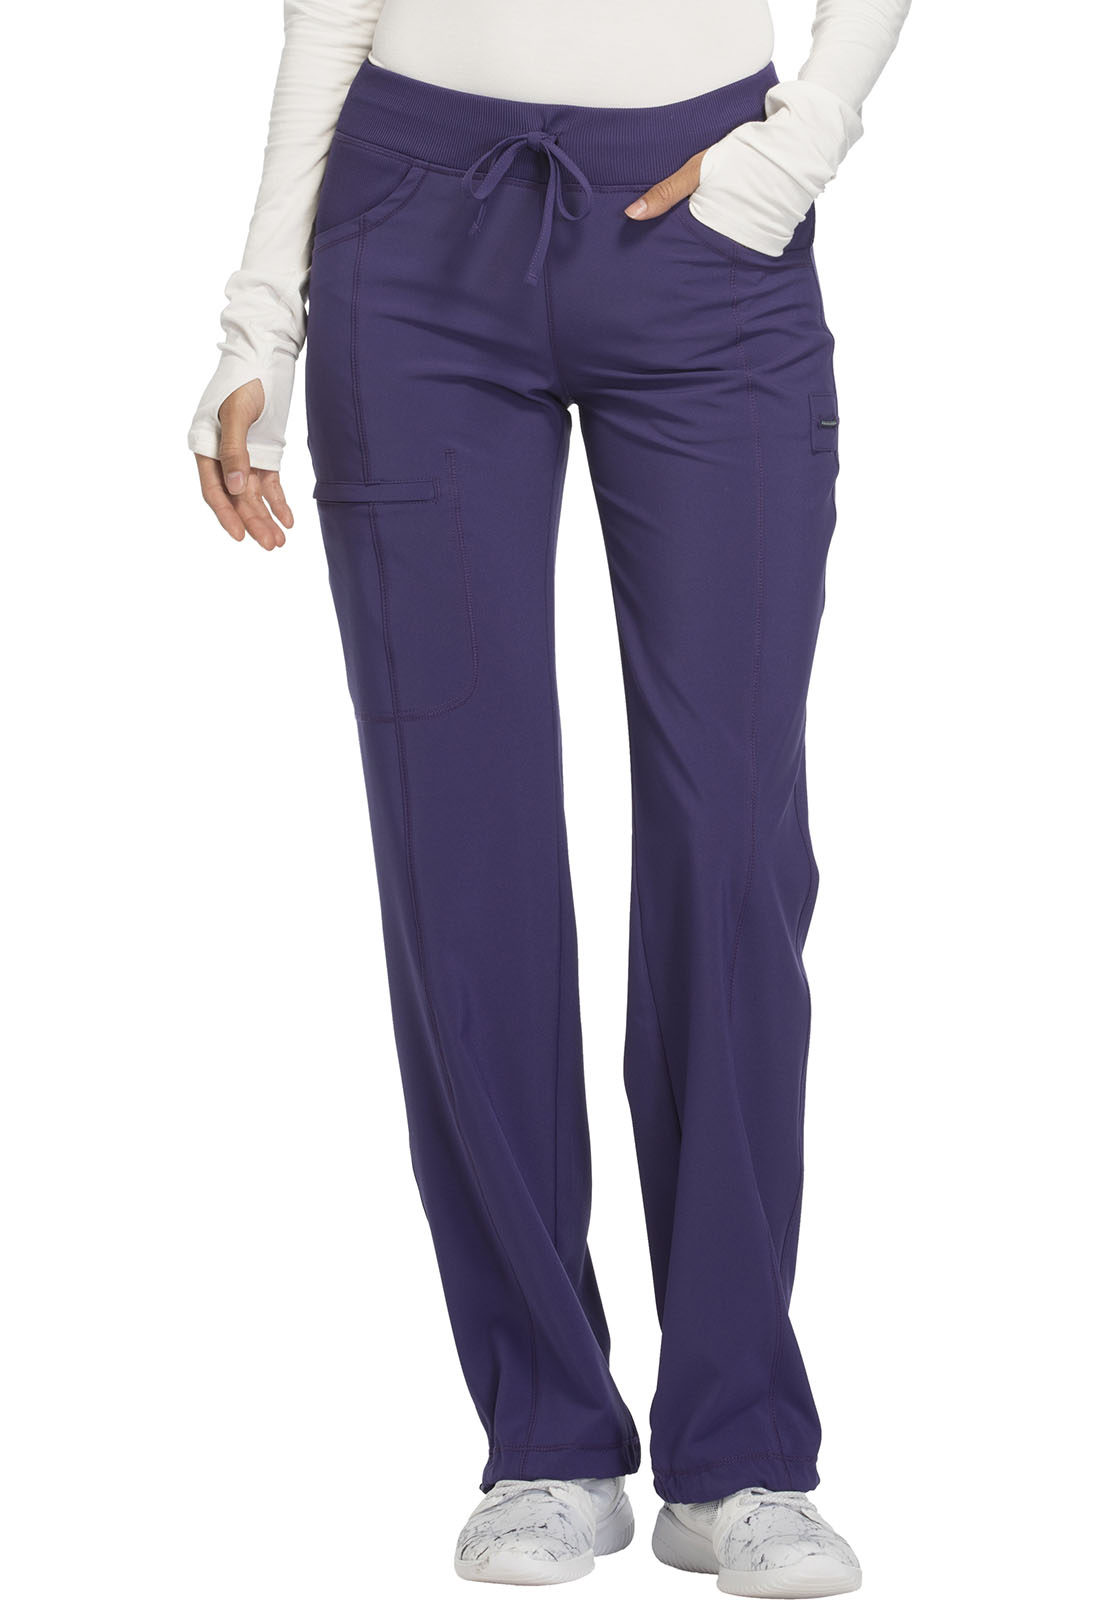 be48108bdad Infinity Low Rise Straight Leg Drawstring Pant in Grape 1123A-GRP ...